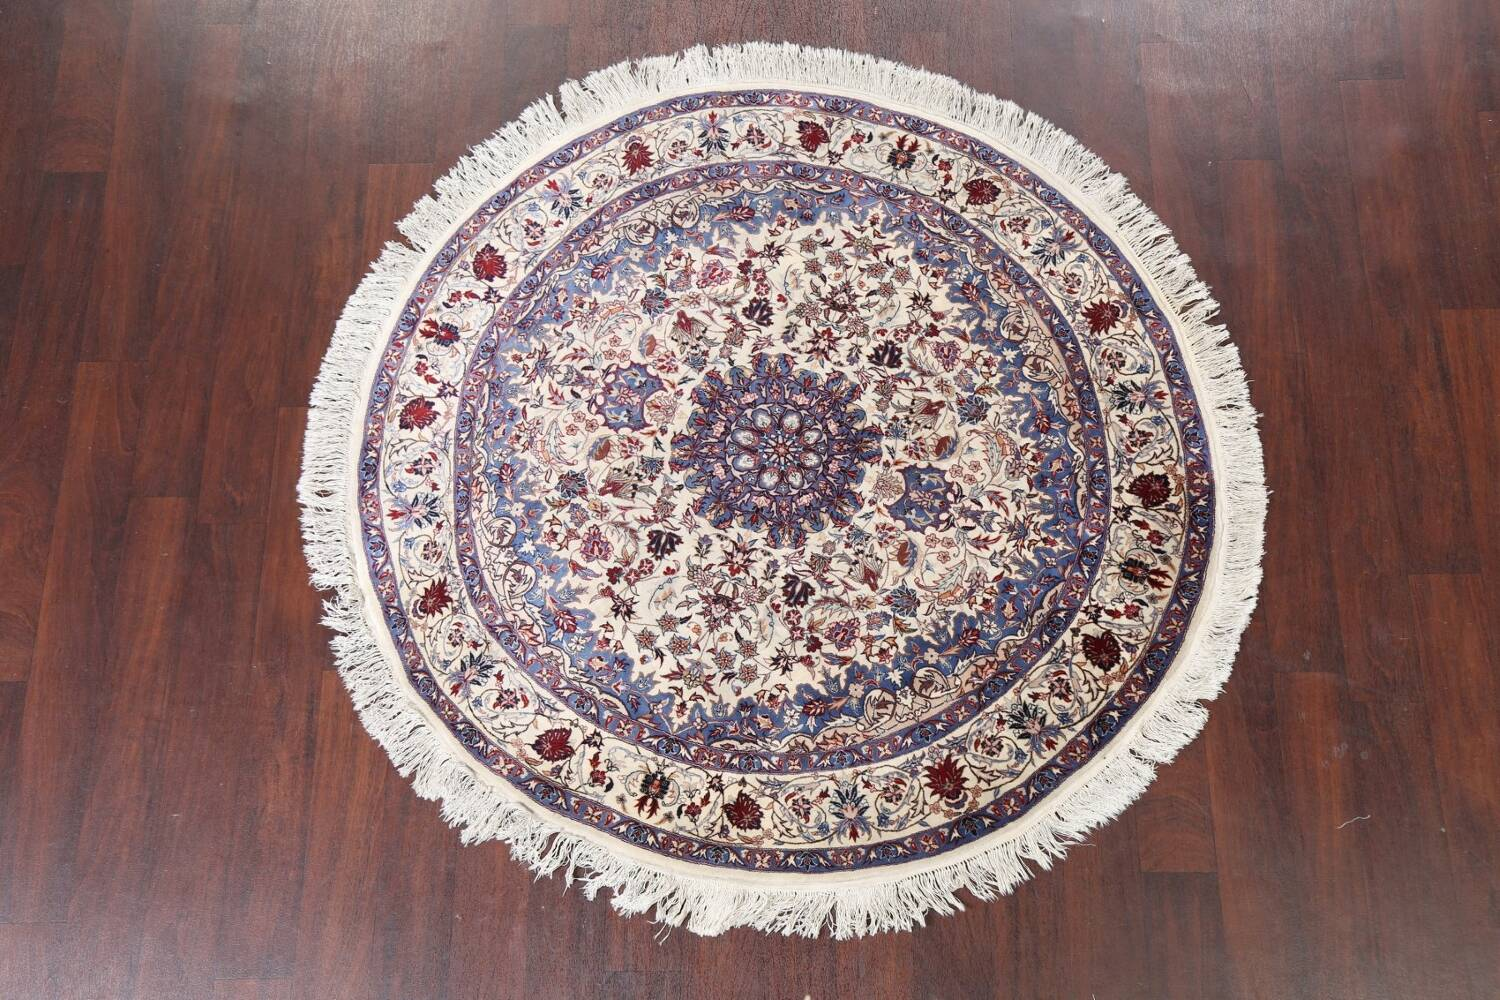 Floral Isfahan Persian Area Rug 6x6 Round image 10